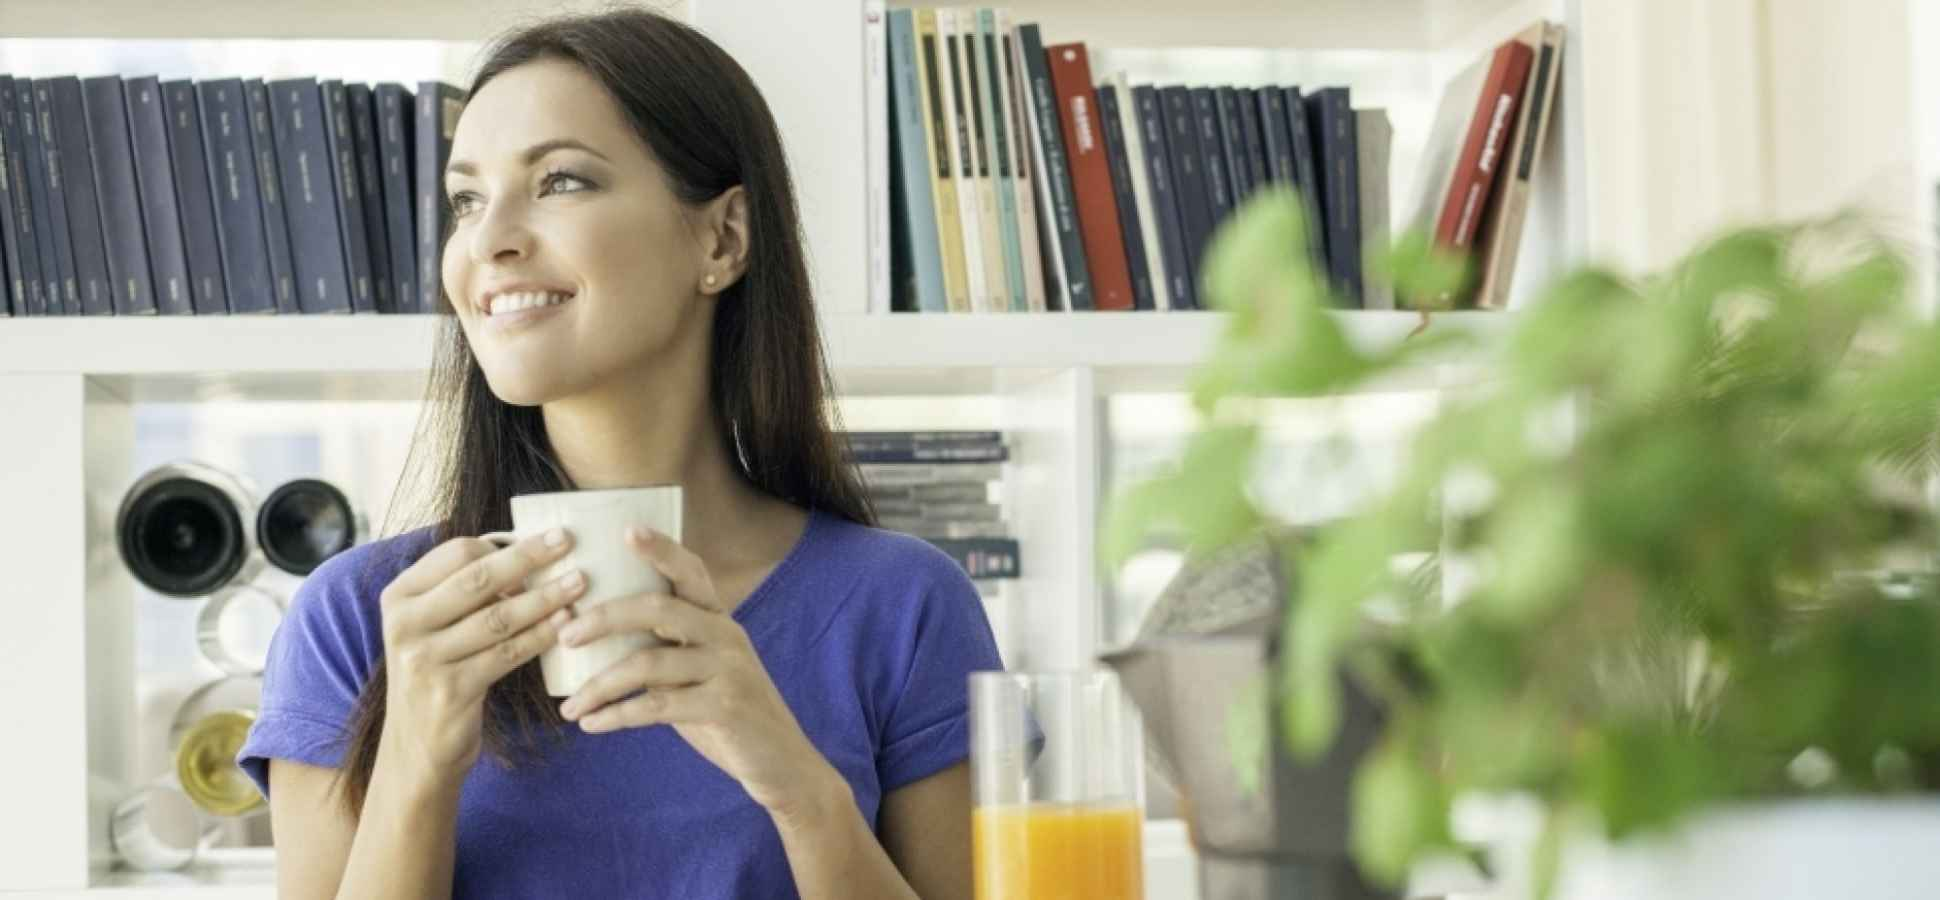 5 Things Really Successful People Do Every Morning